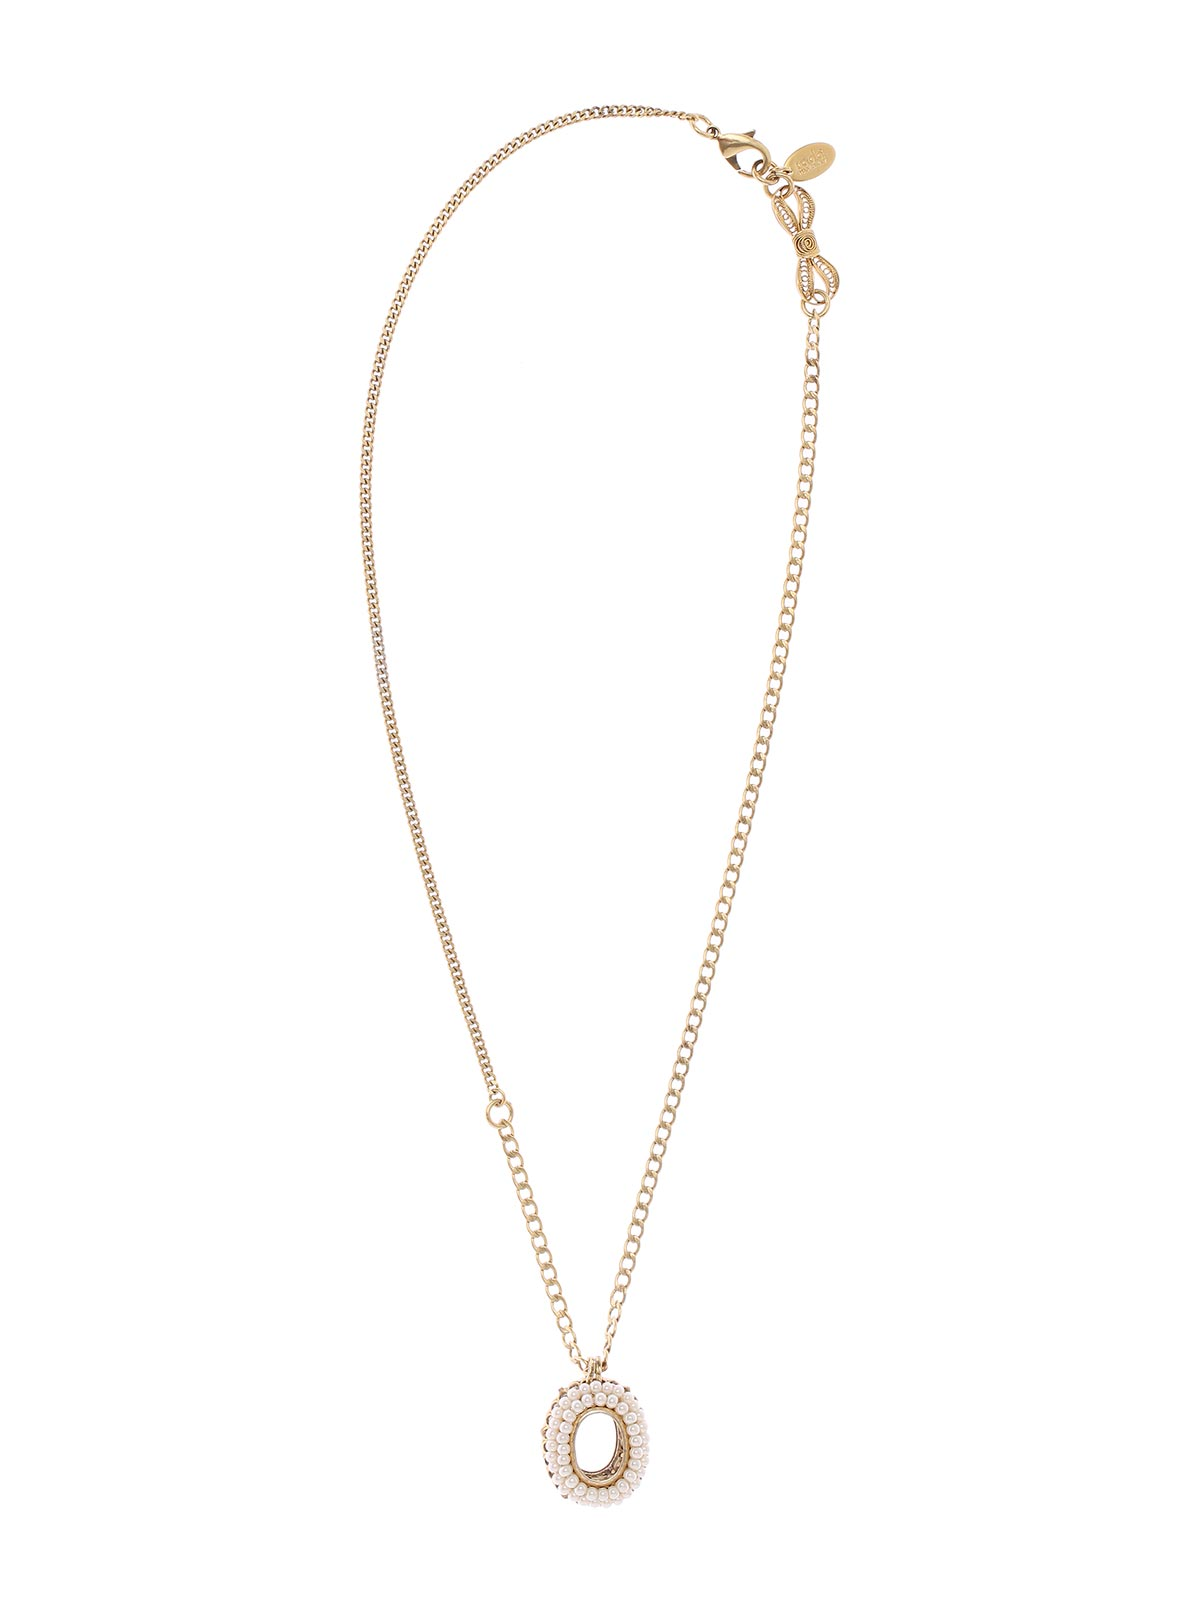 Chain necklace with oval charm embellished with pearls